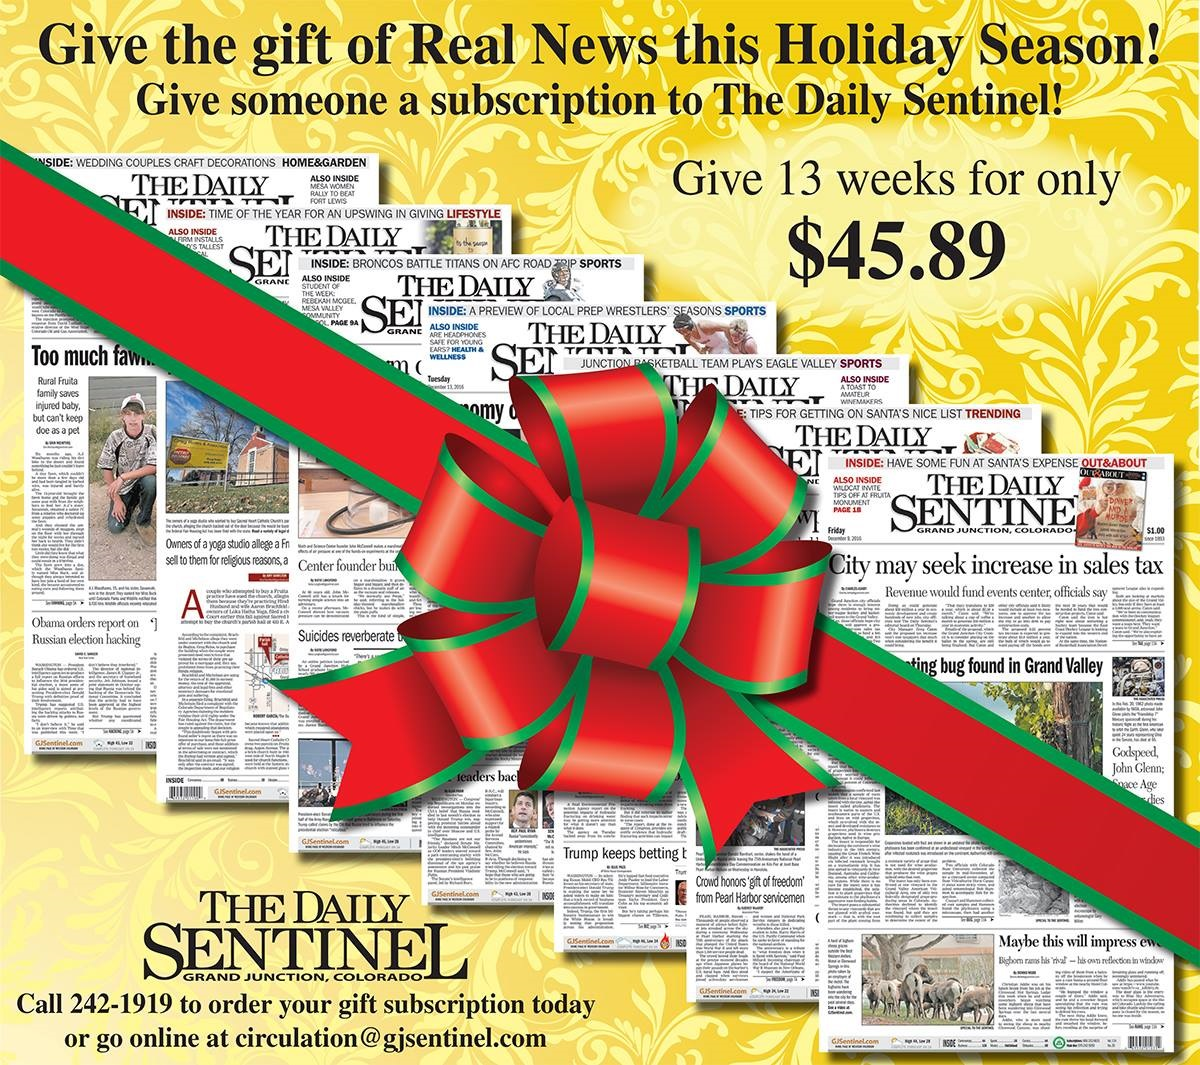 Idea #4 of 50 Days of Ideas! Give the gift of Real News!